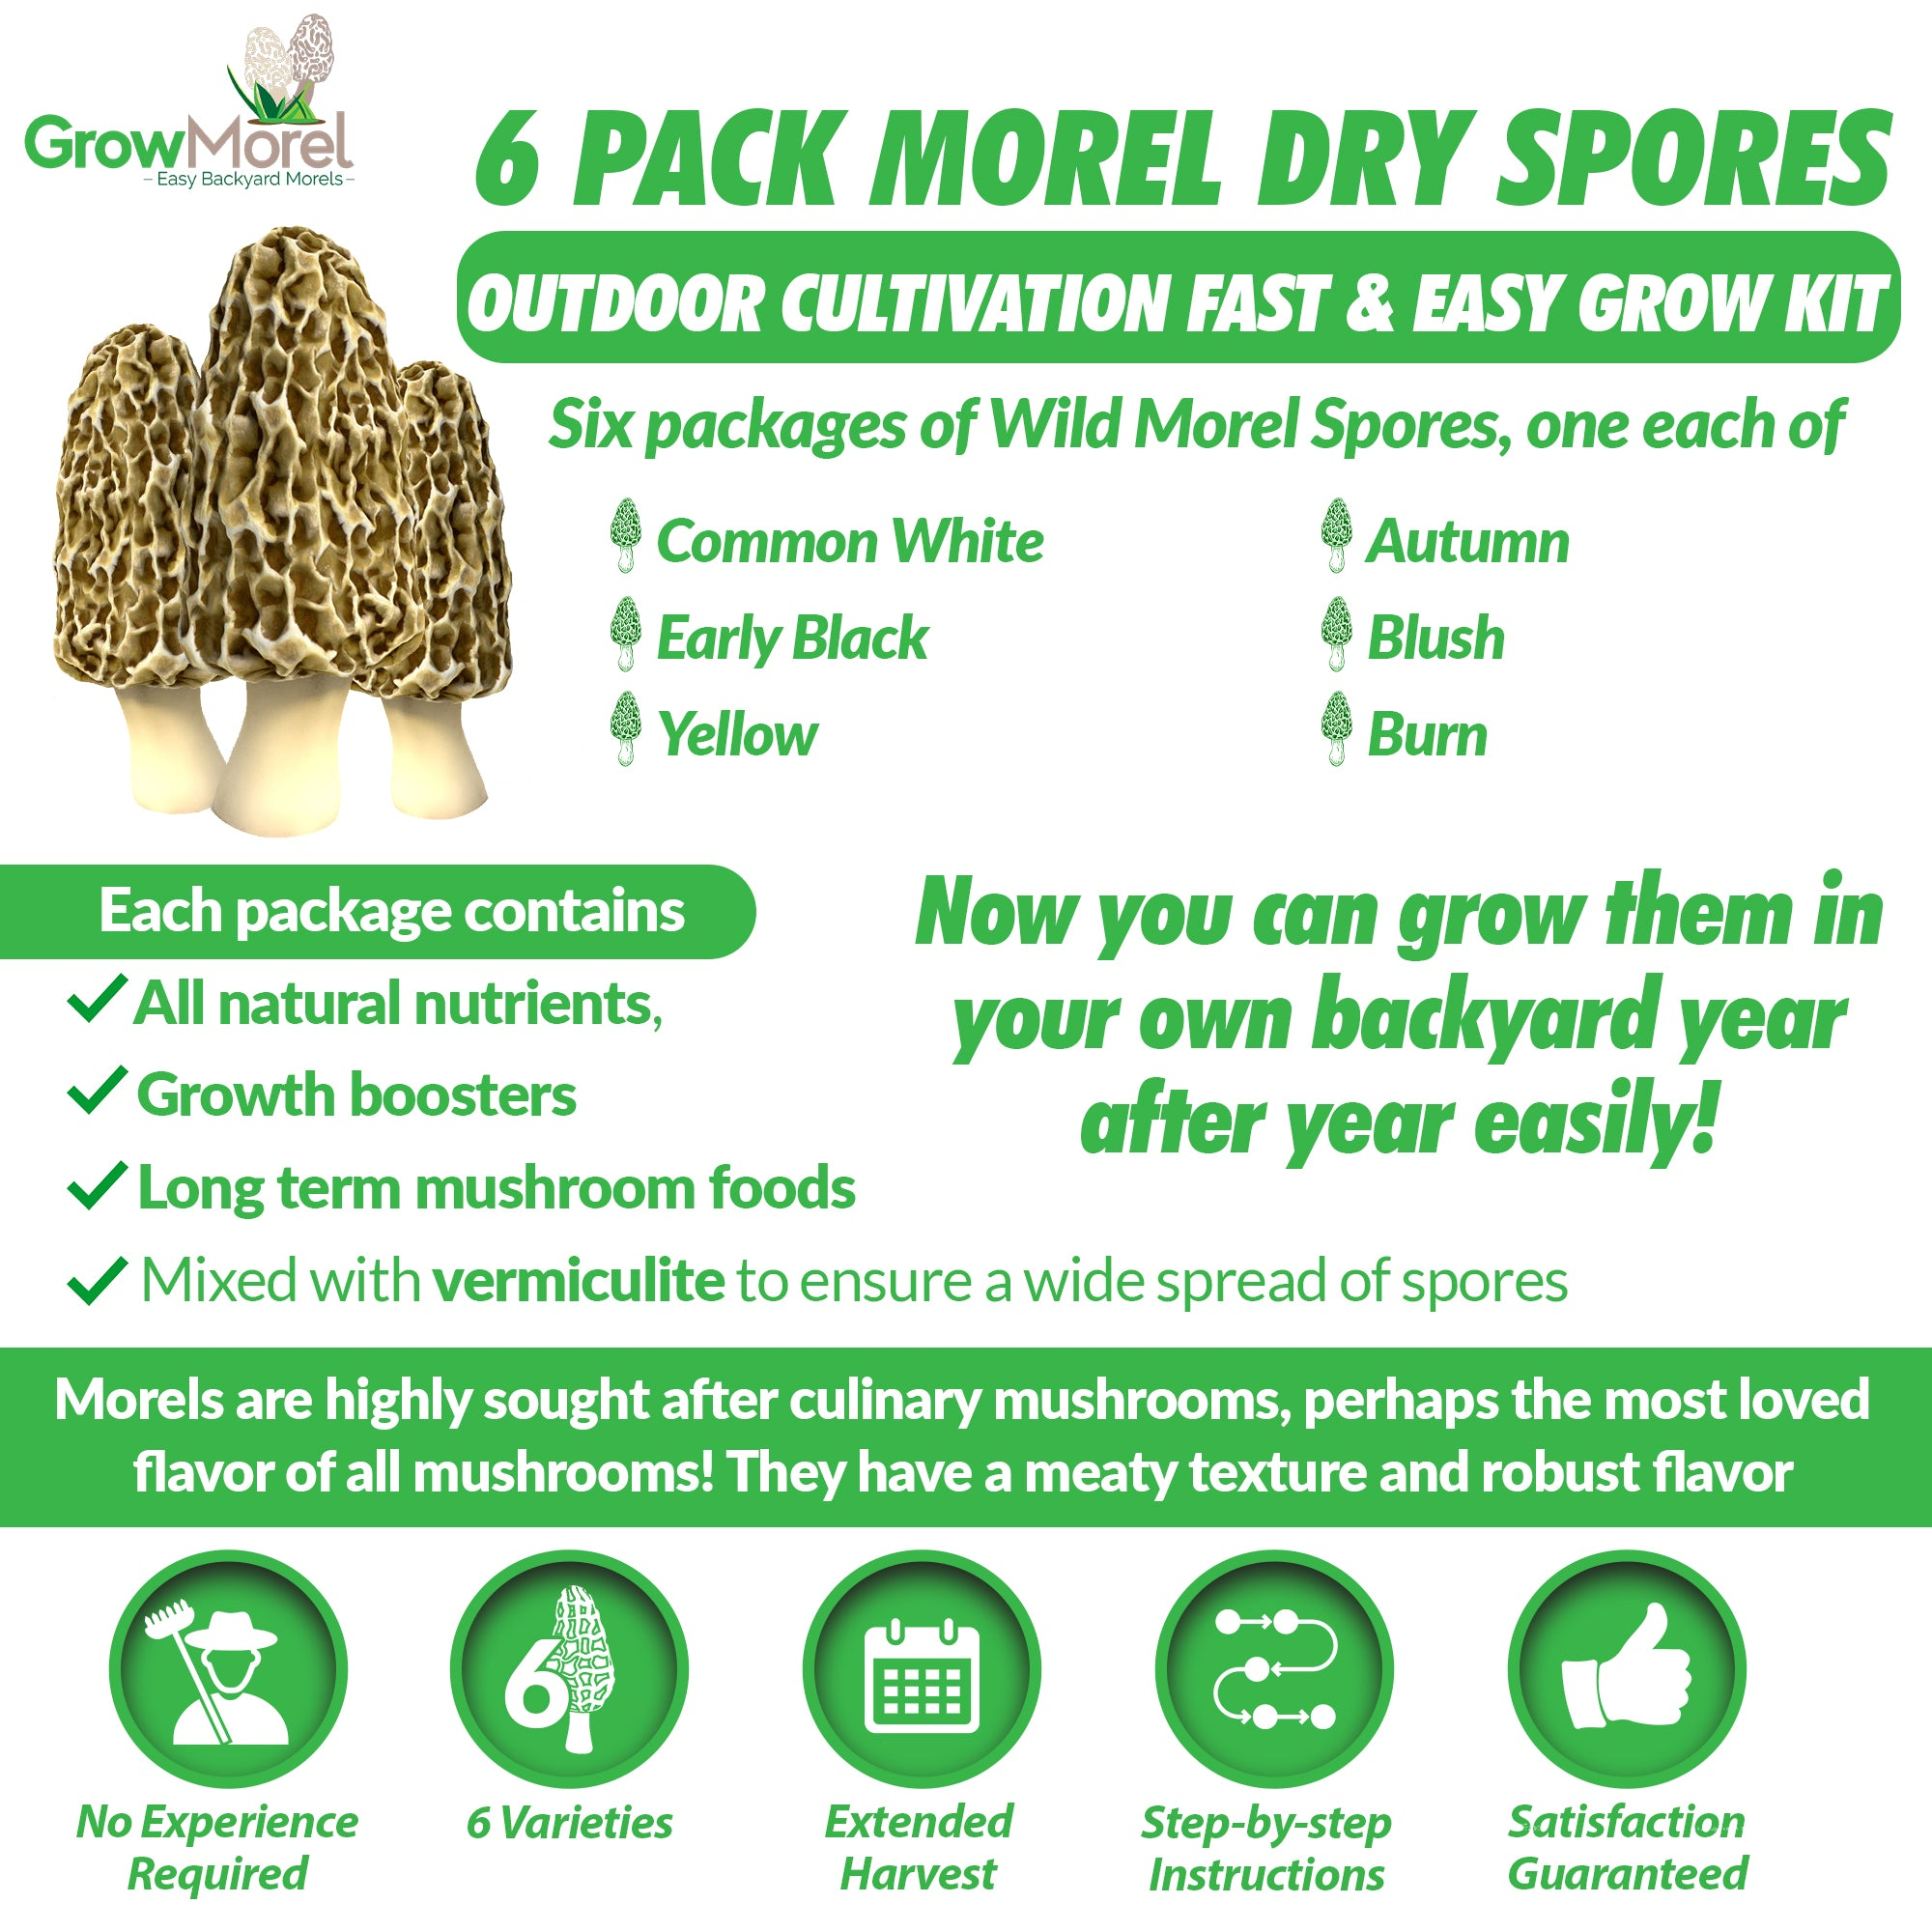 6 Pack Morel Dry Spores Outdoor Cultivation Fast & Easy Grow Kit